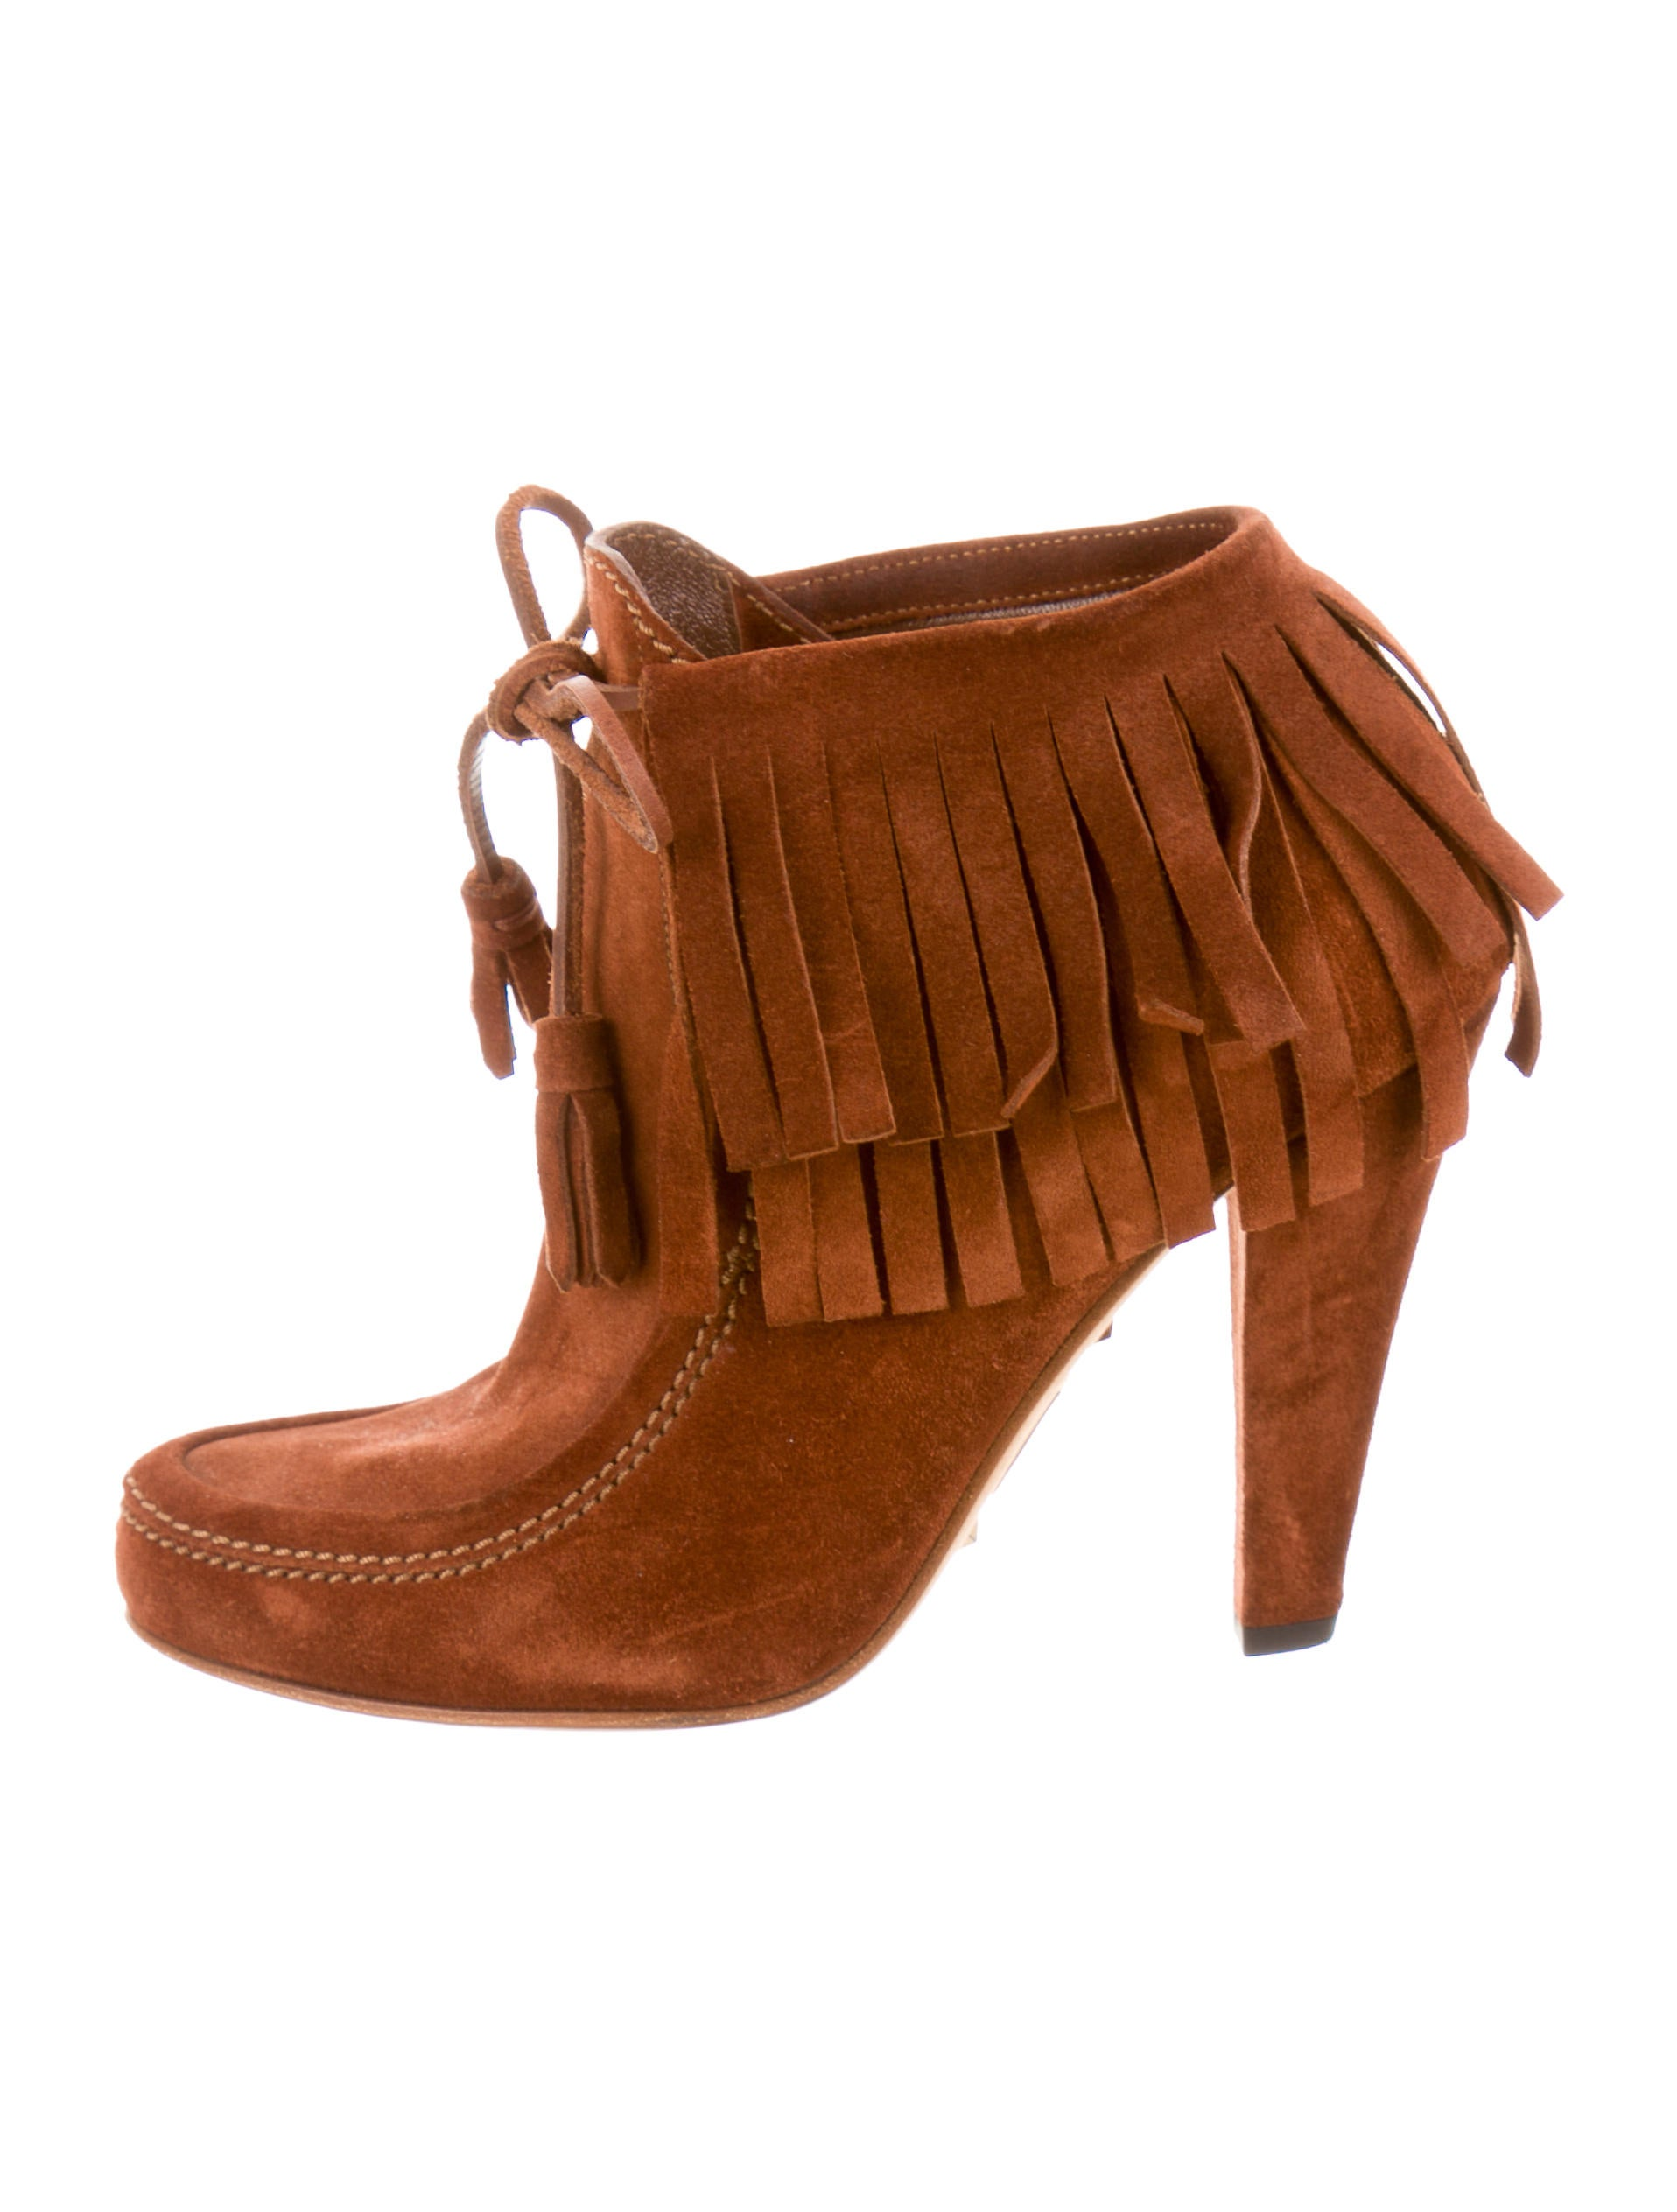 gucci suede fringe ankle boots shoes guc78643 the